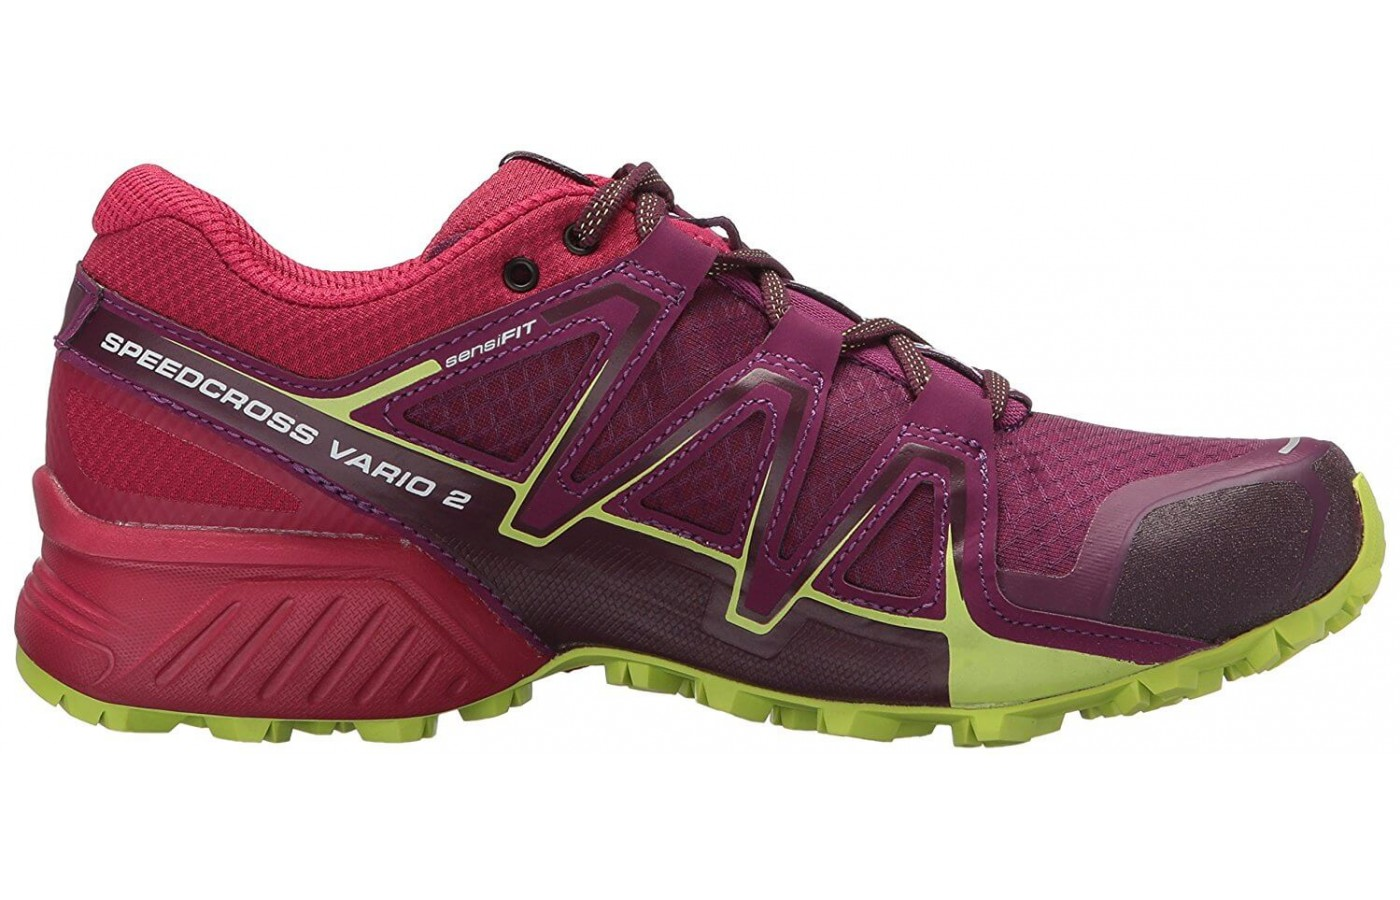 The Salomon Speedcross Vario 2 has a Sensifit upper